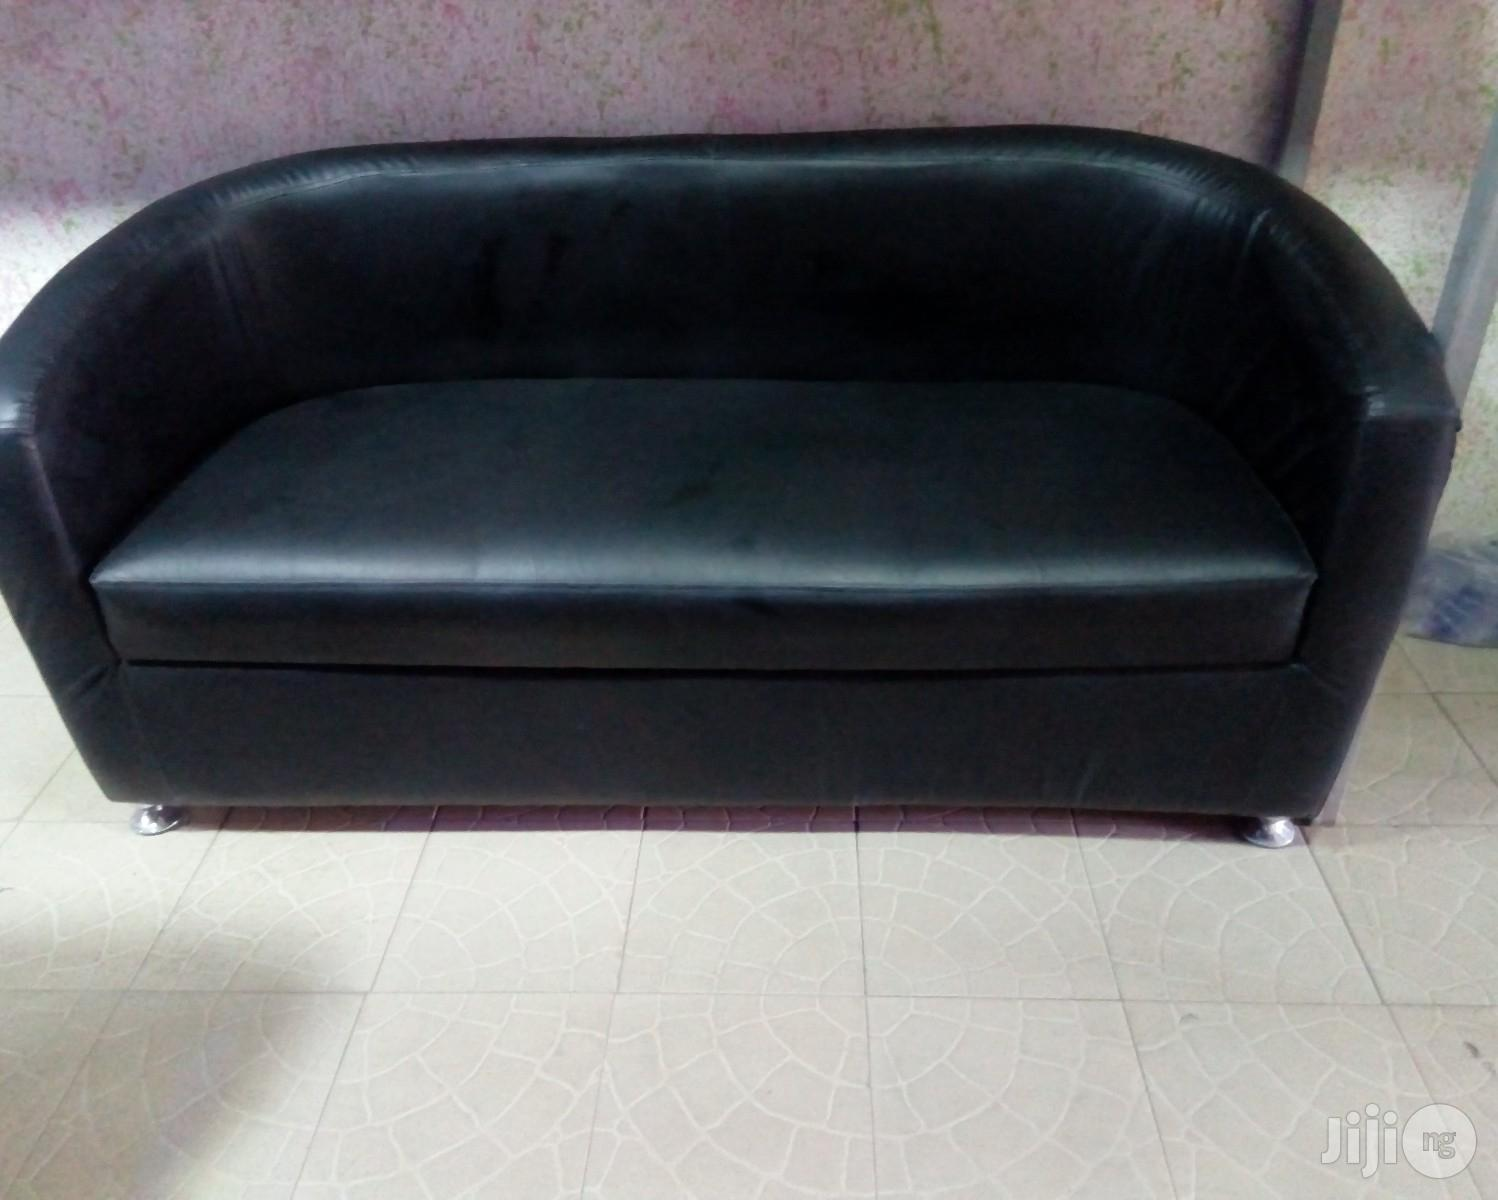 Sofa Bucket Chair : Three Seater Sofa Bucket Chair .Leather   Furniture for sale in Ojo, Lagos State, Nigeria